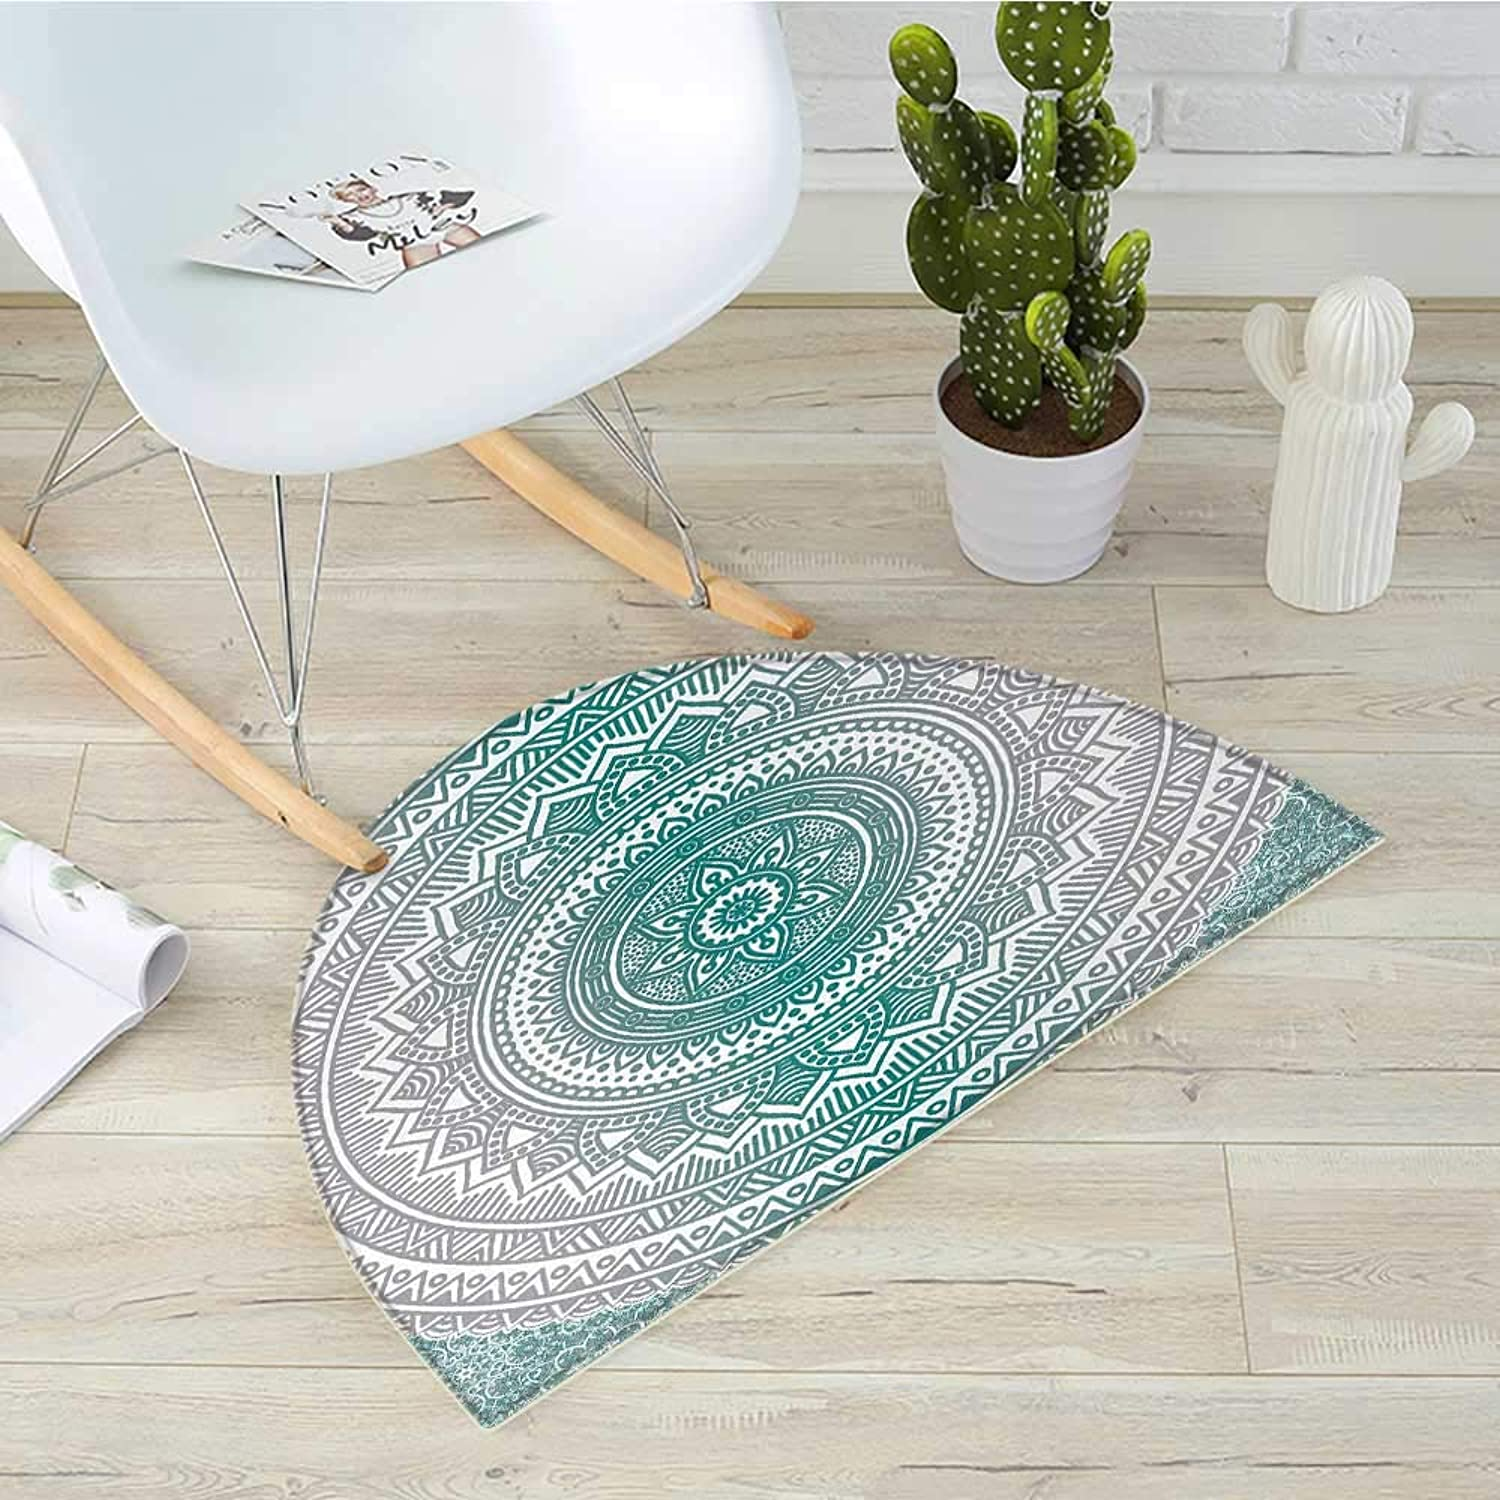 Grey and Teal Semicircle Doormat Mandala Ombre Design Sacred Space Geometric Center Point Boho Meditation Art Halfmoon doormats H 39.3  xD 59  Grey Teal